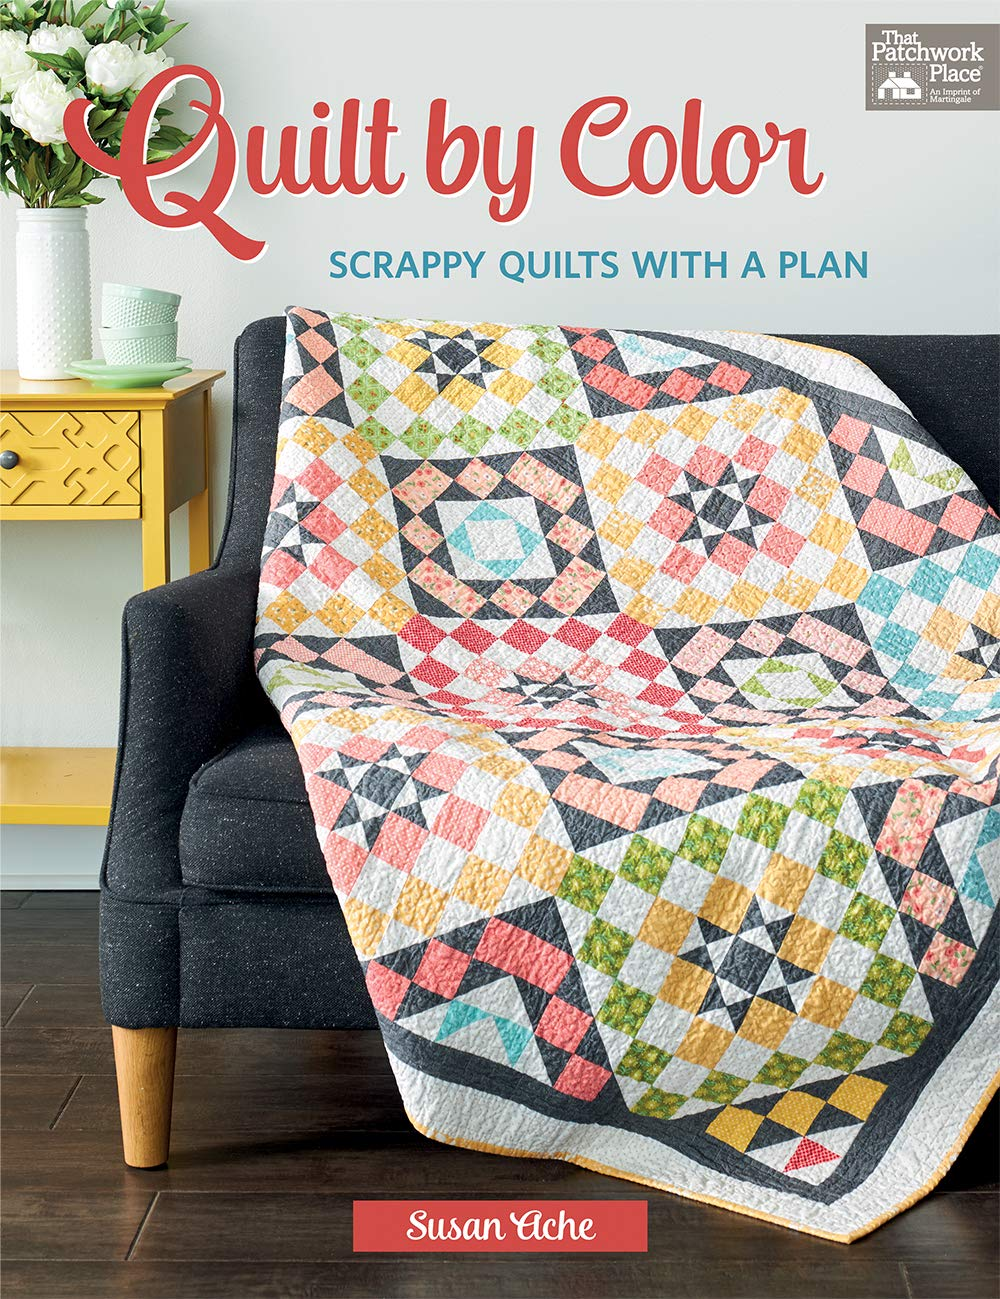 Quilt by Color: Scrappy Quilts with a Plan by That Patchwork Place